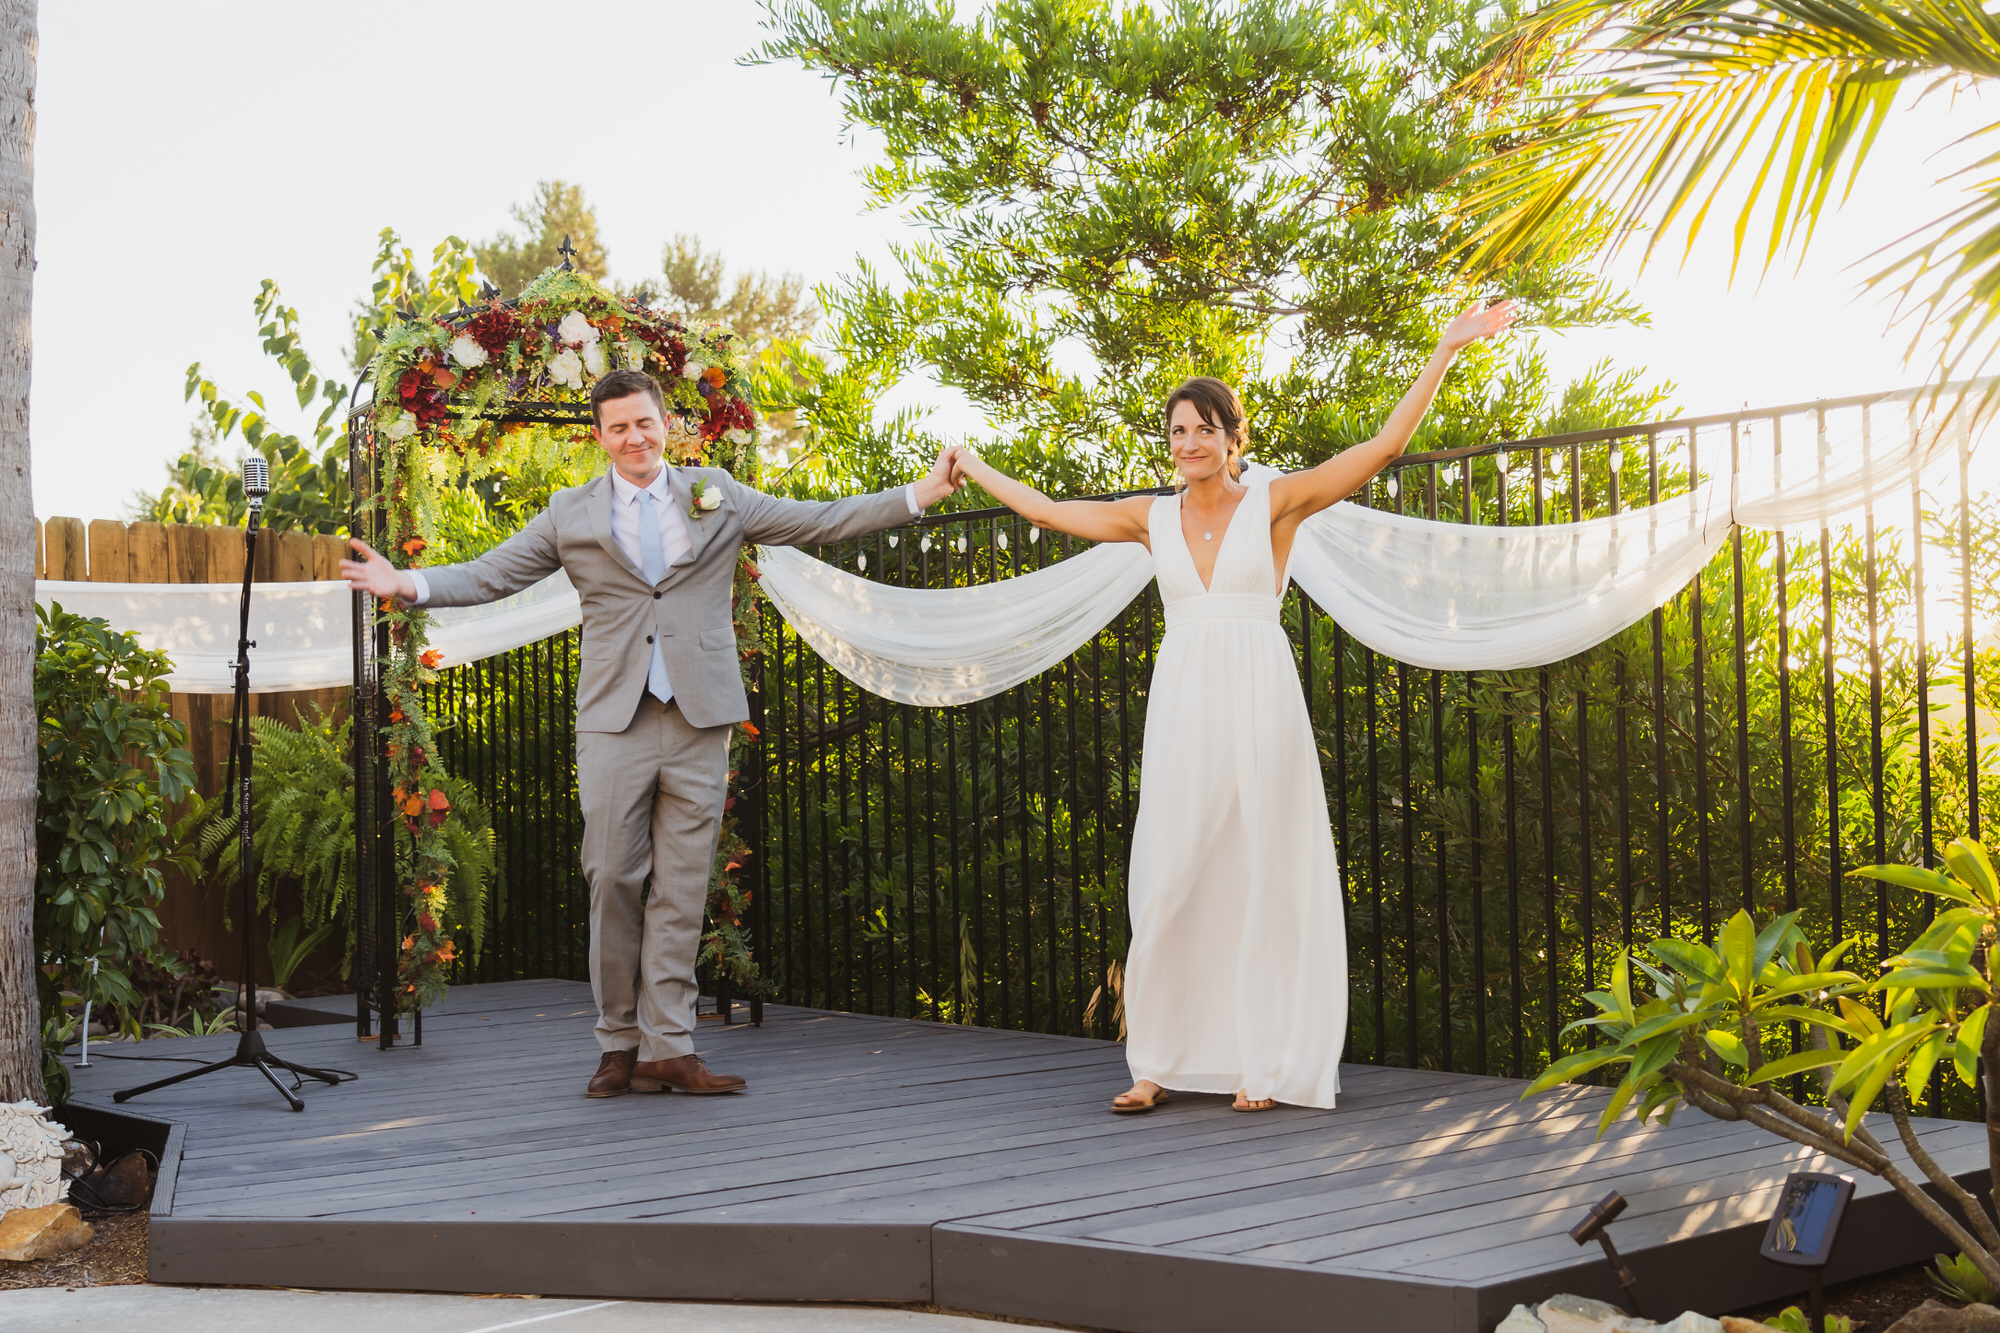 carlsbad_wedding_025